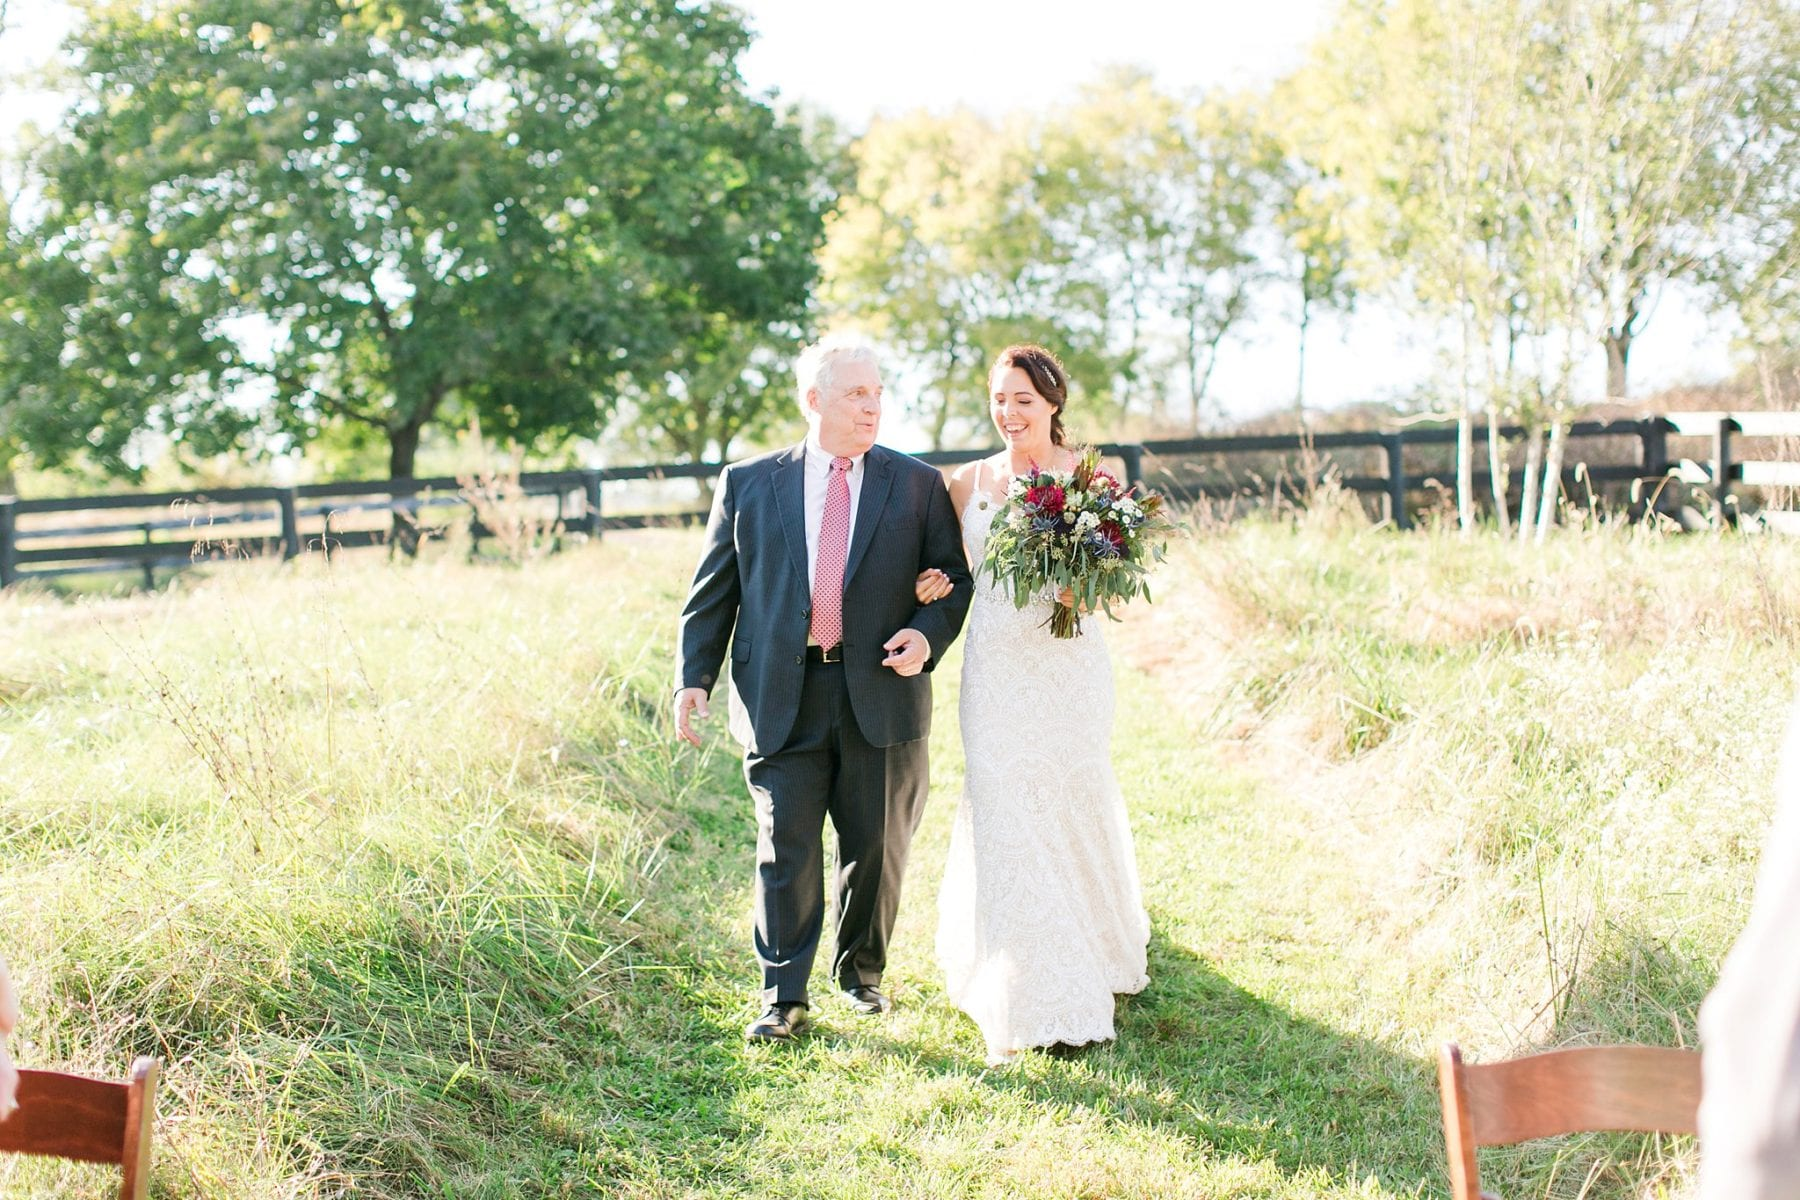 Tranquility Farm Wedding Photos Leesburg Wedding Photographer Megan Kelsey Photography Virginia Wedding Photographer Matt & Colleen-122.jpg